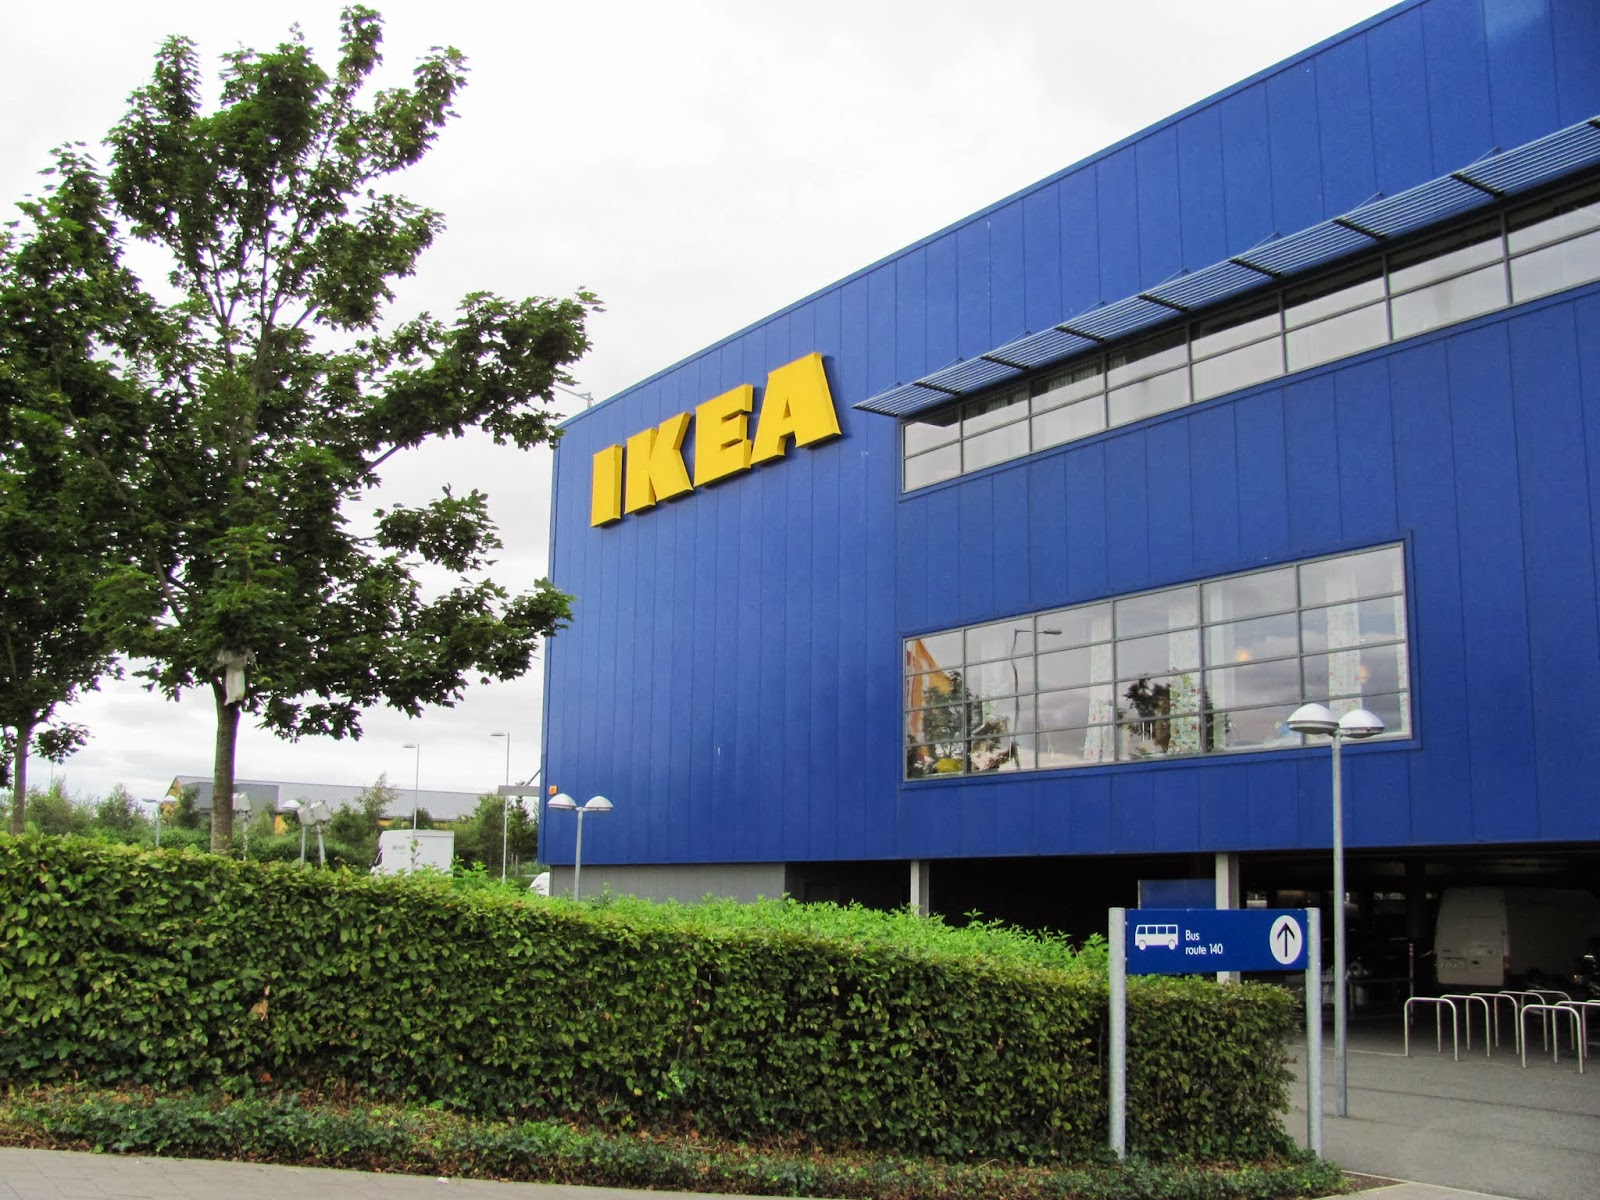 The main IKEA logo seen from the outside of IKEA in Dublin, Ireland